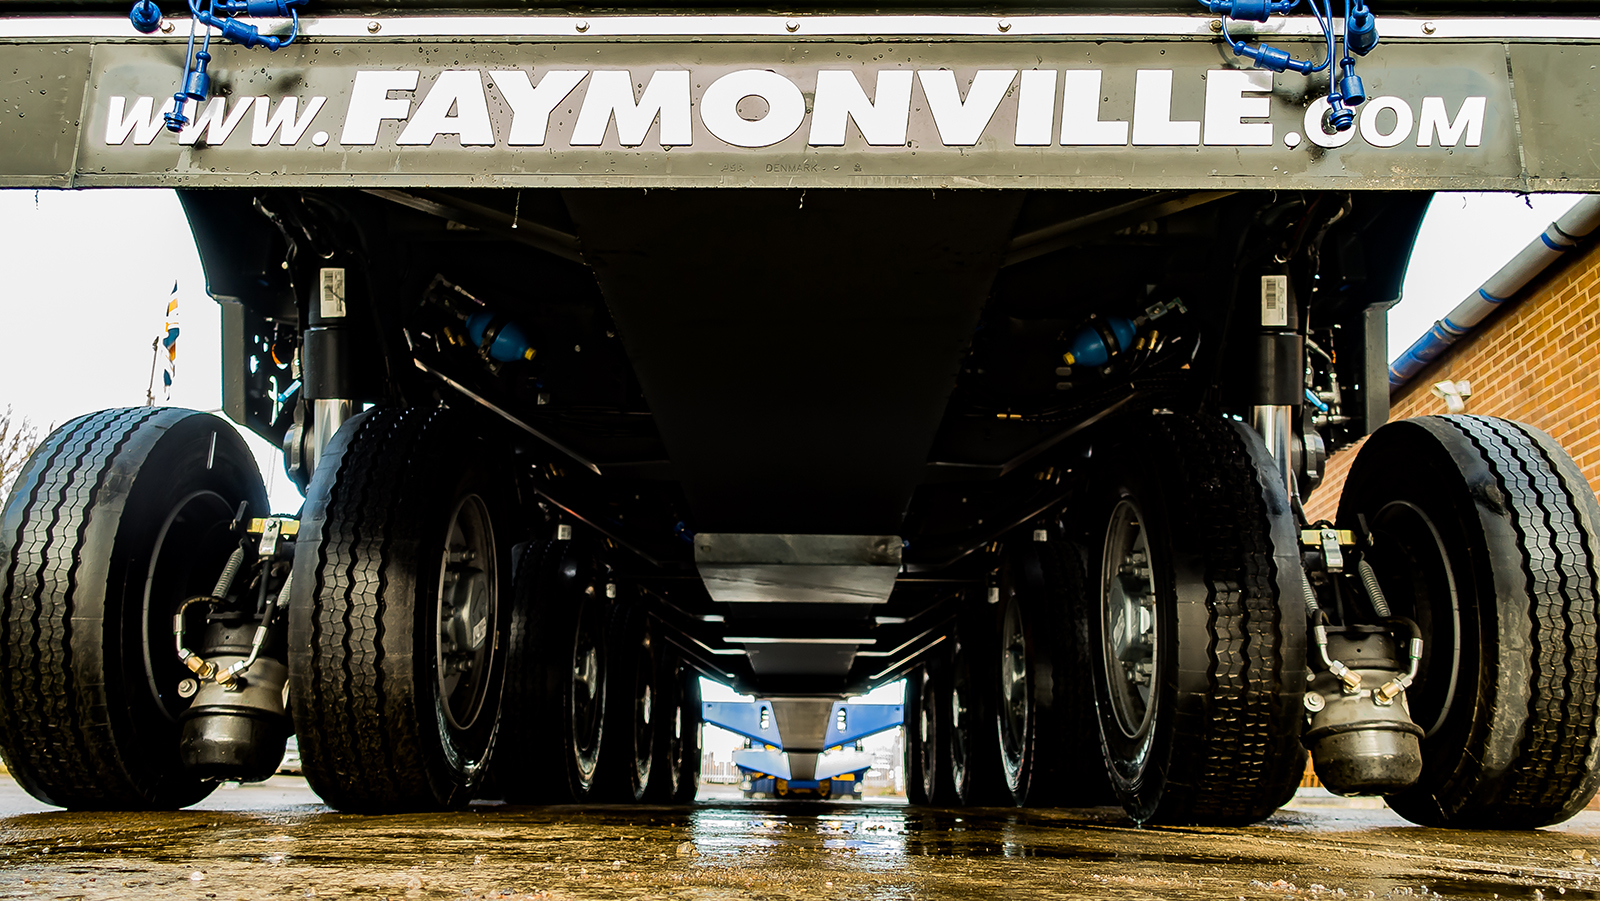 Southern Recovery Service New Faymonville MultiMAX